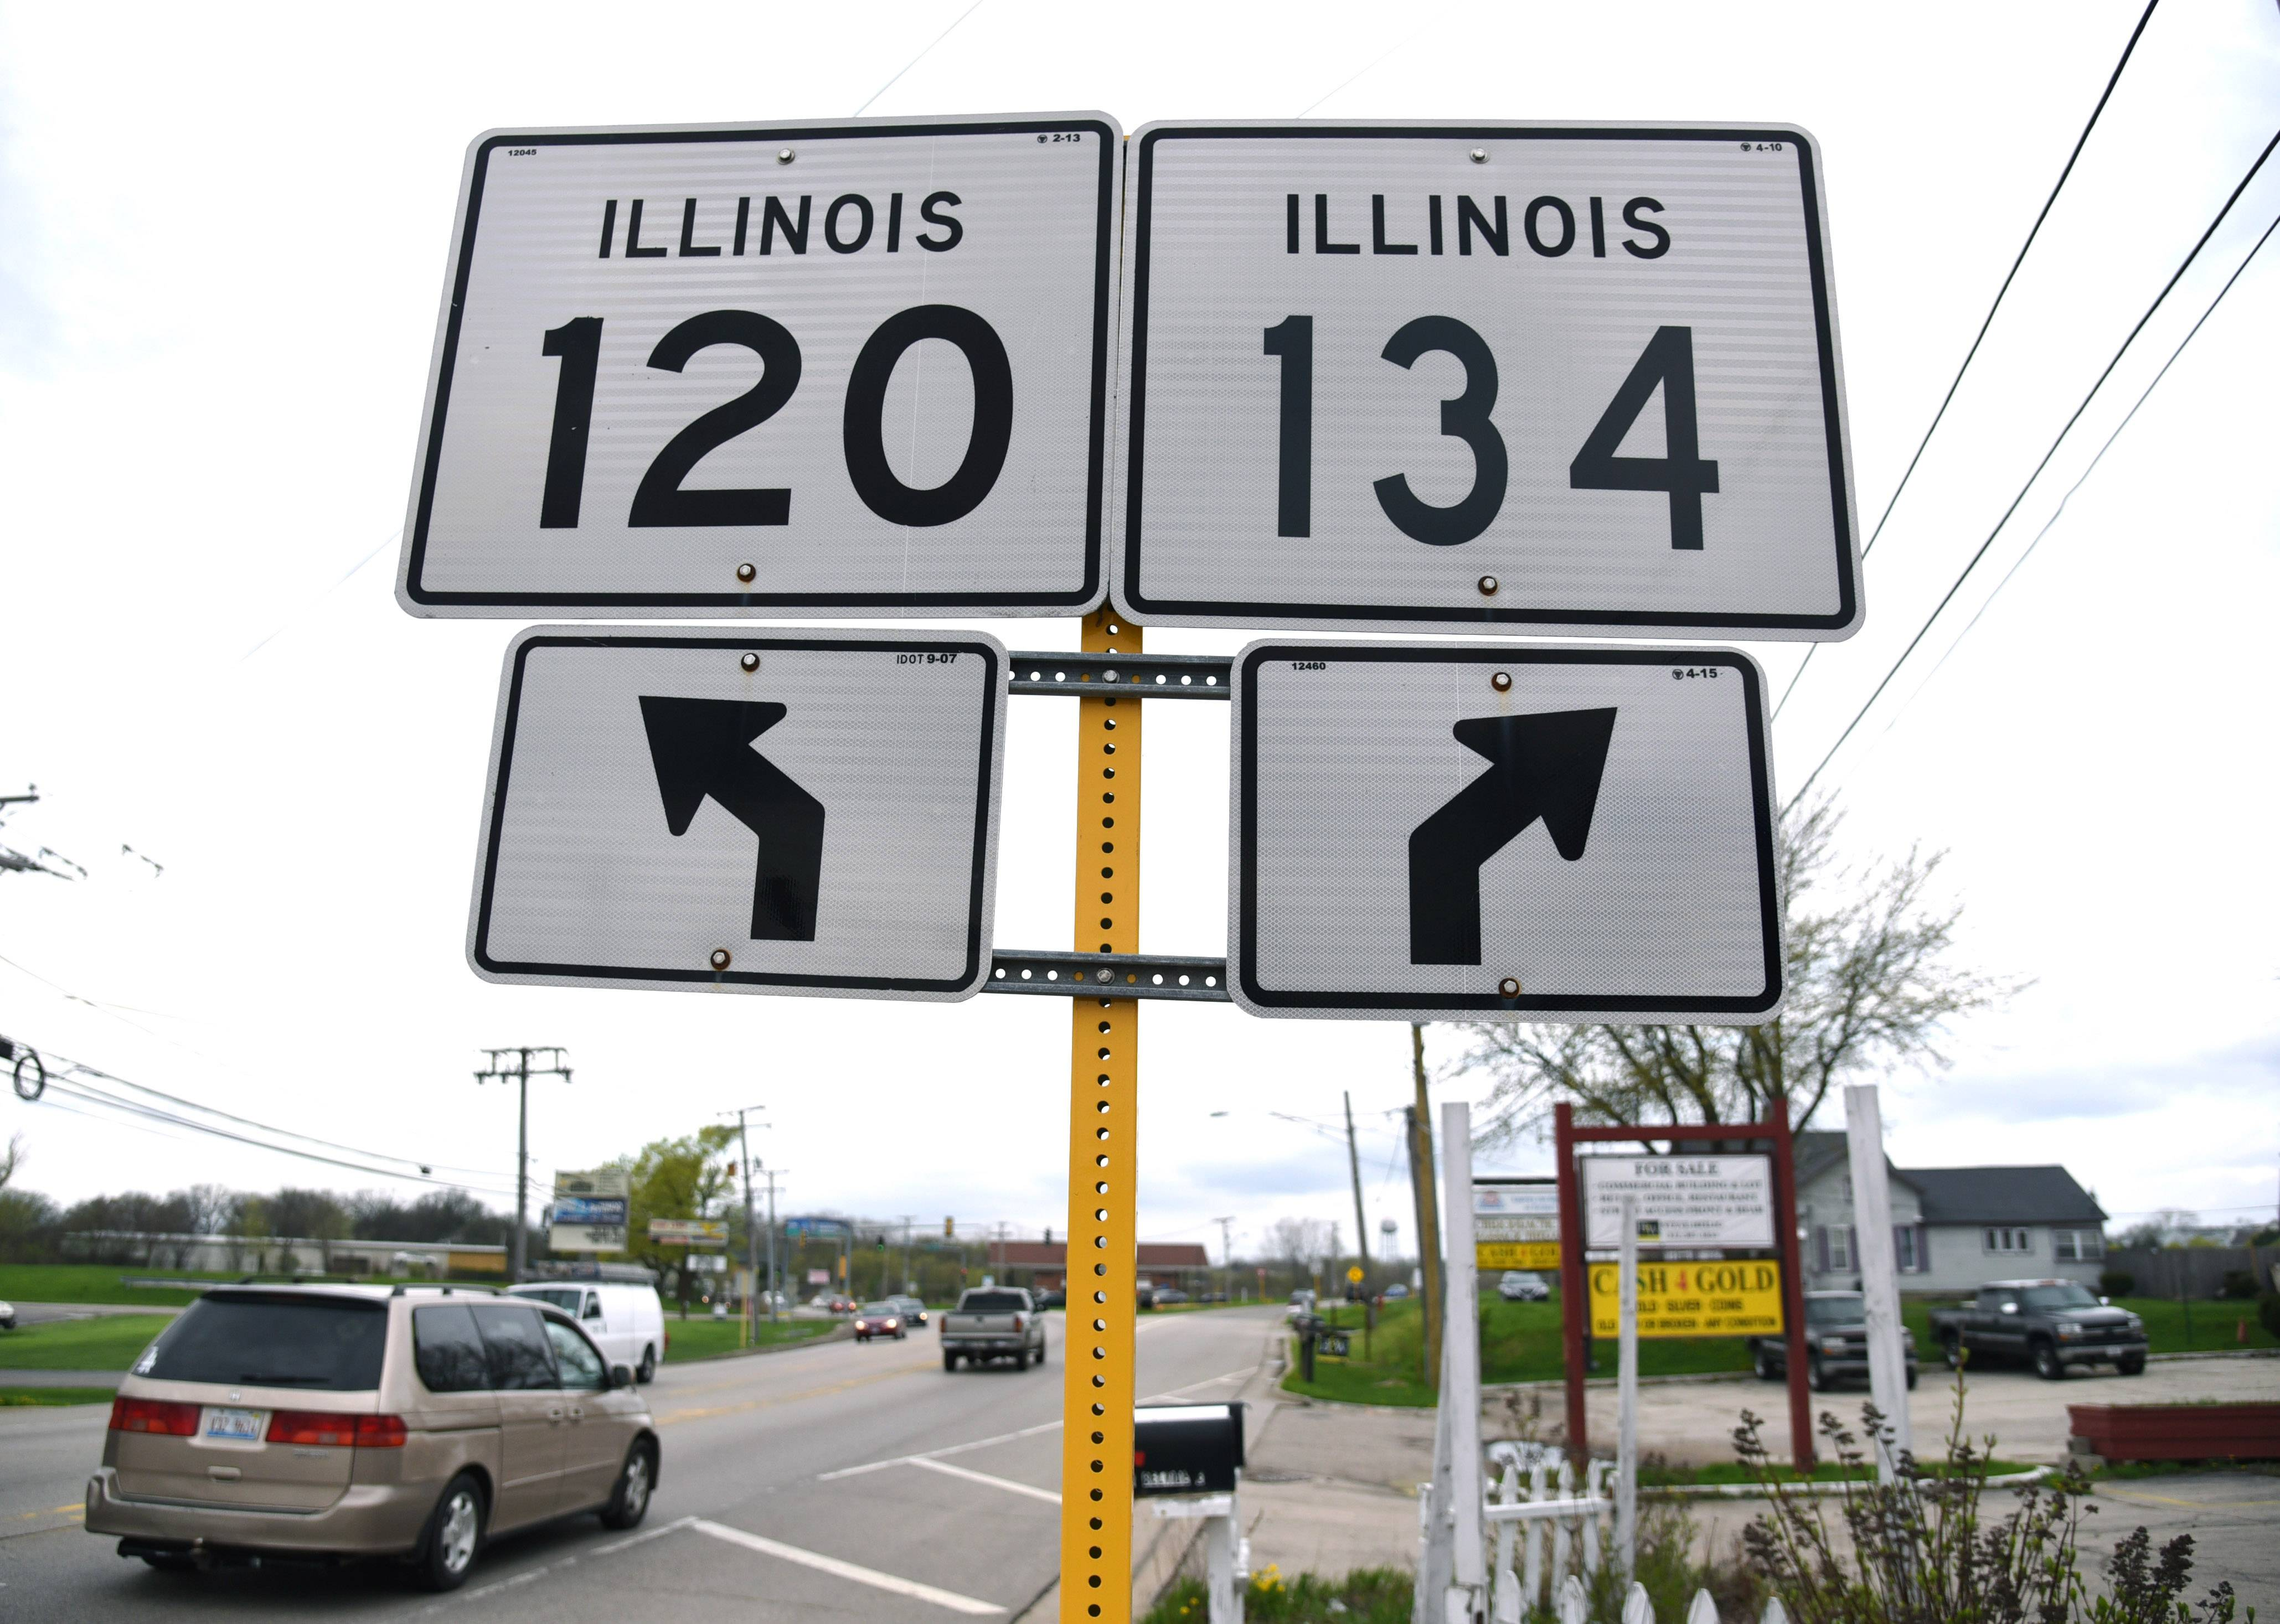 A project to connect and synchronize traffic signals on Route 120 east from Route 134 in Hainesville to Route 45 in Grayslake is expected to improve traffic flow.